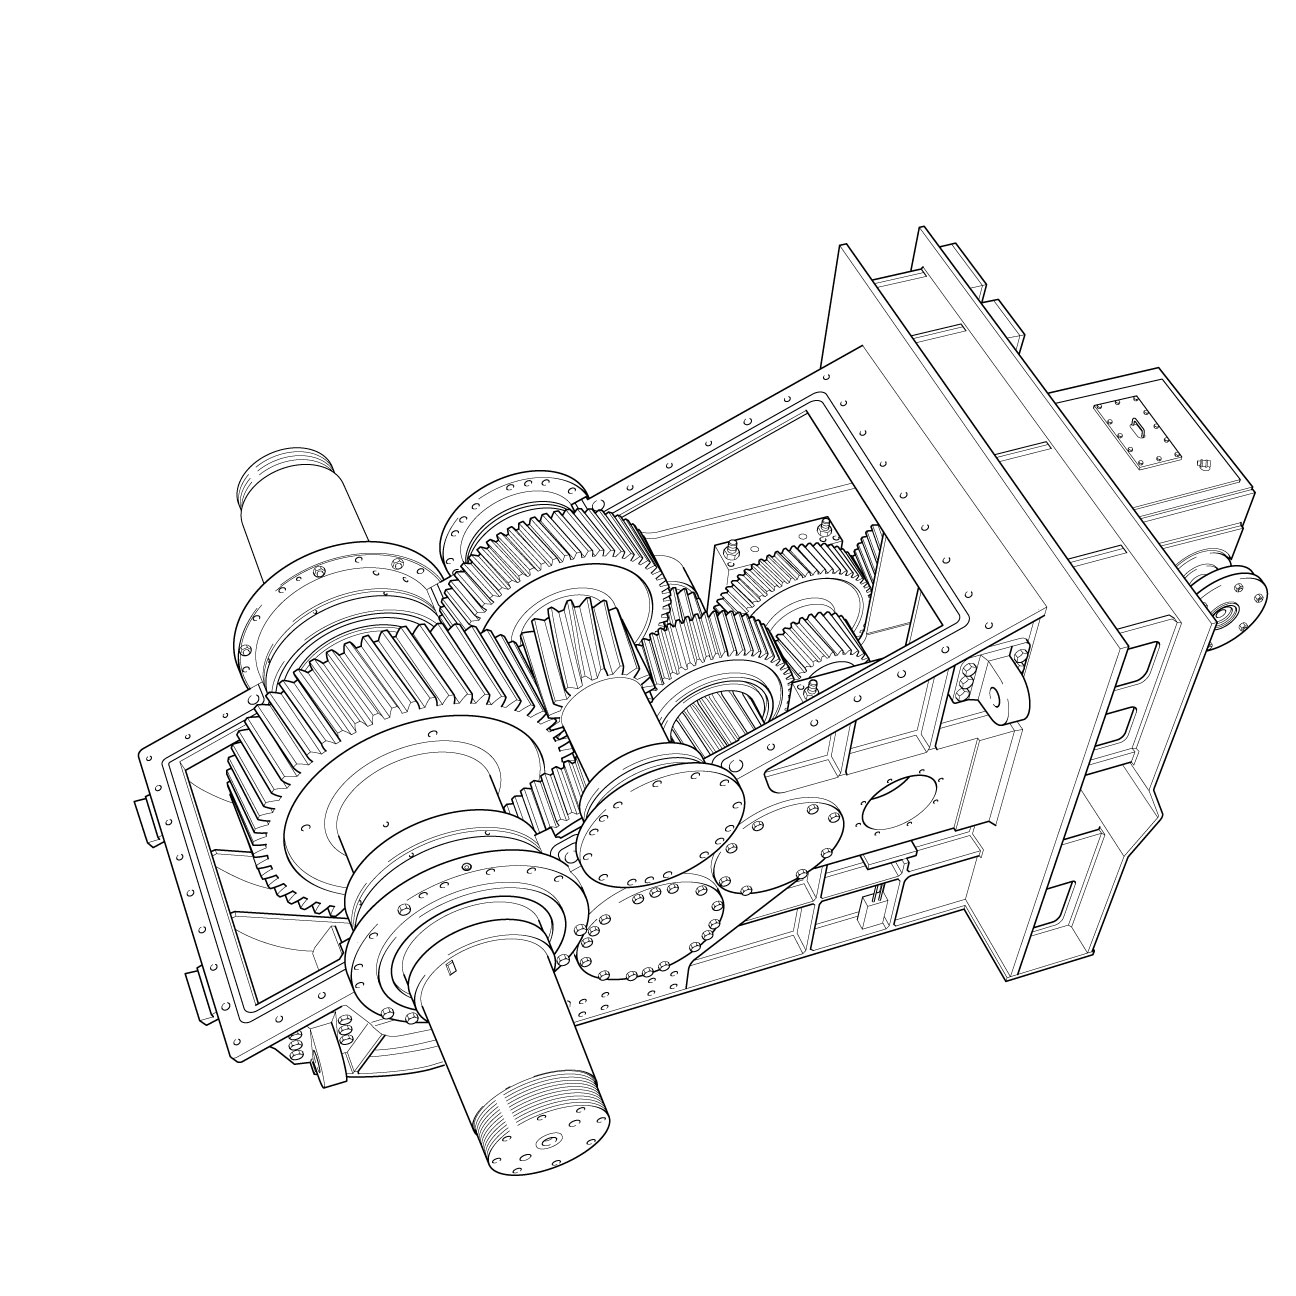 Technical Illustration for service manuals, technical